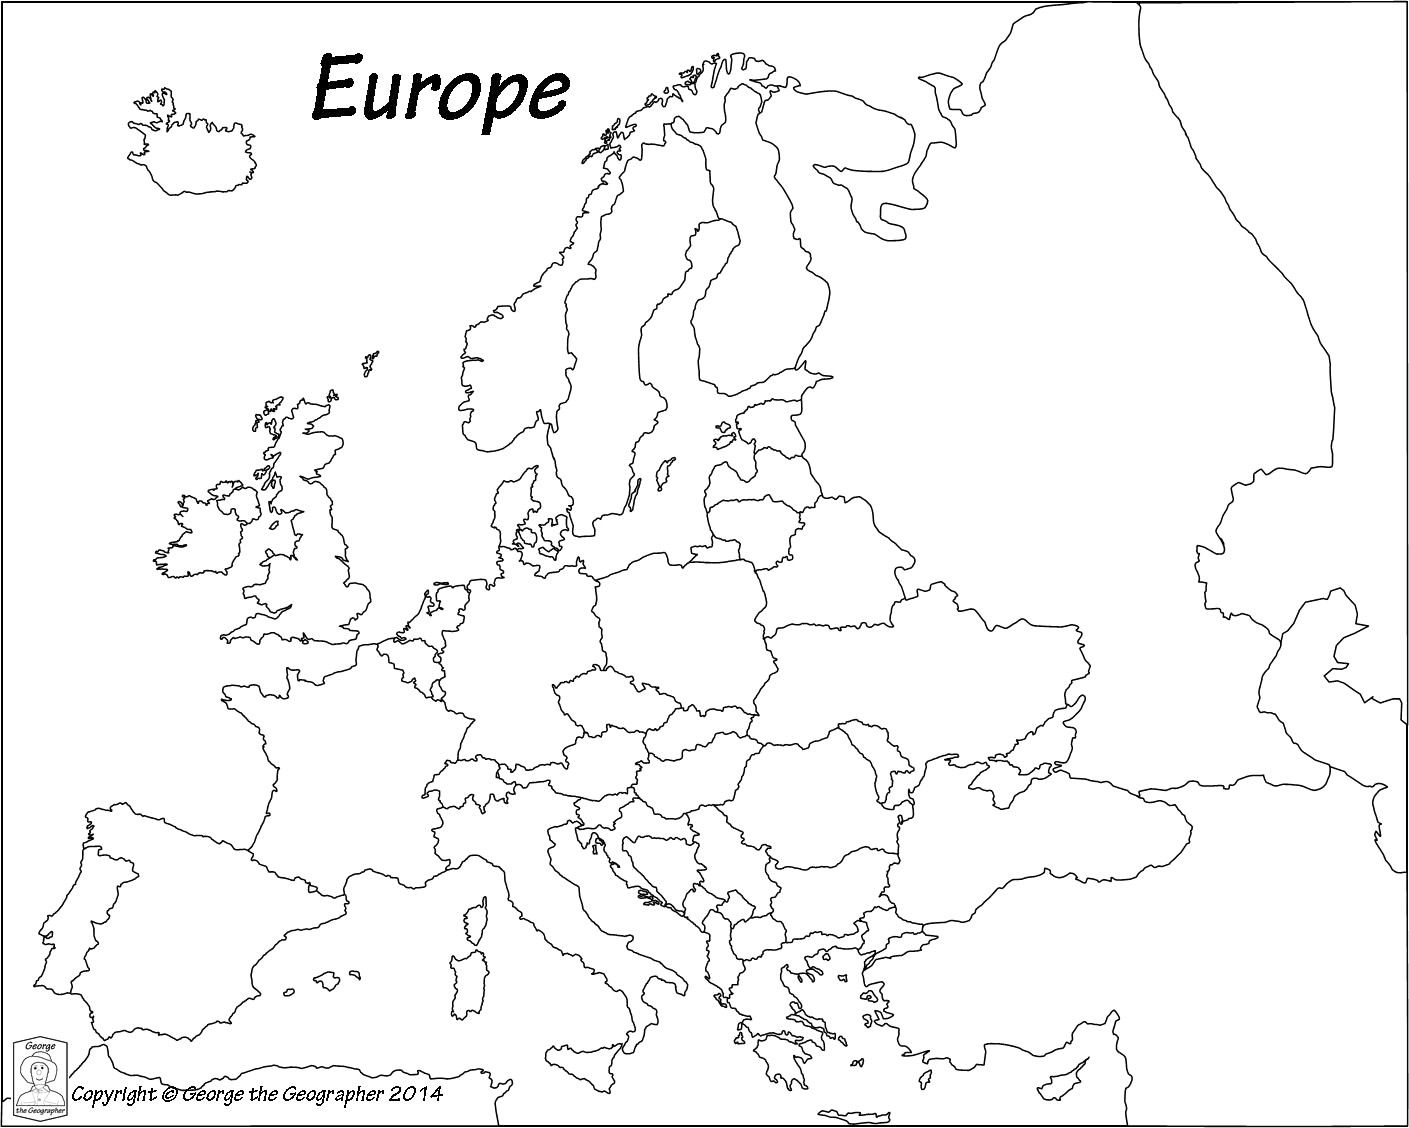 Europe Unlabeled Map Telene Me And Of Black White